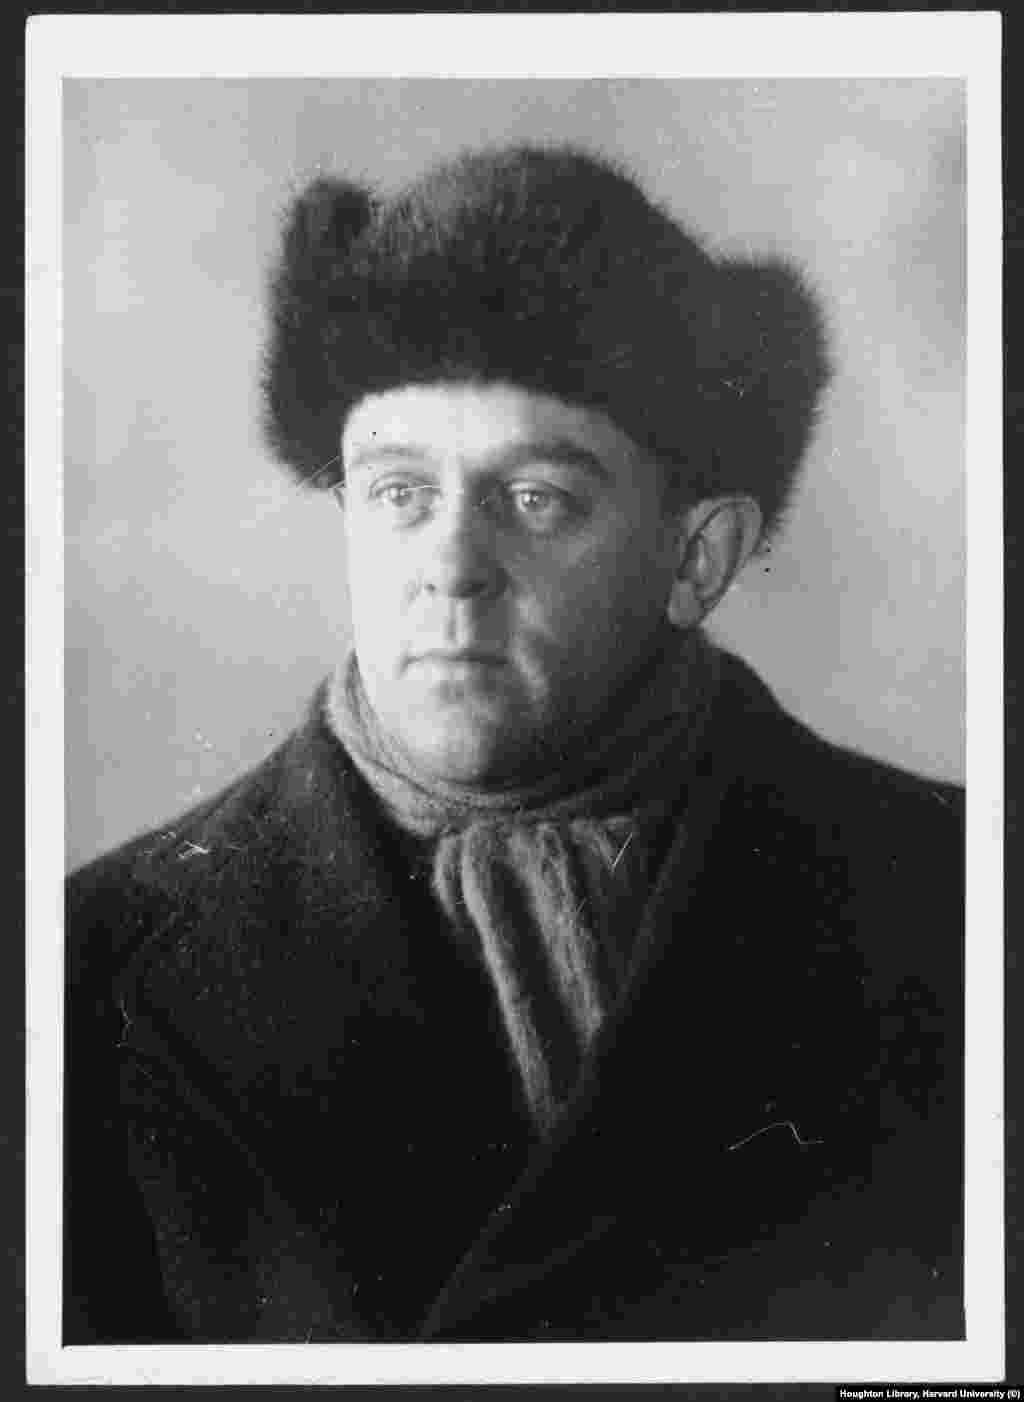 """Reed wearing a fur """"ushanka"""" winter cap during one of his trips to Russia   In April 1918, when Reed and Bryant returned to the United States to write their accounts of the revolution in Russia, Reed was arrested for previously published anti-war articles.  His notes from Russia were confiscated. Eventually the papers were returned and he locked himself away in a Greenwich Village apartment with a Russian dictionary to write his most famous book. The account of what he saw in Russia was called Ten Days That Shook The World. A friend who bumped into Reed at the time described him as """"gaunt, unshaven, greasy-skinned, a stark sleepless half-crazy look on his slightly potato-like face."""""""